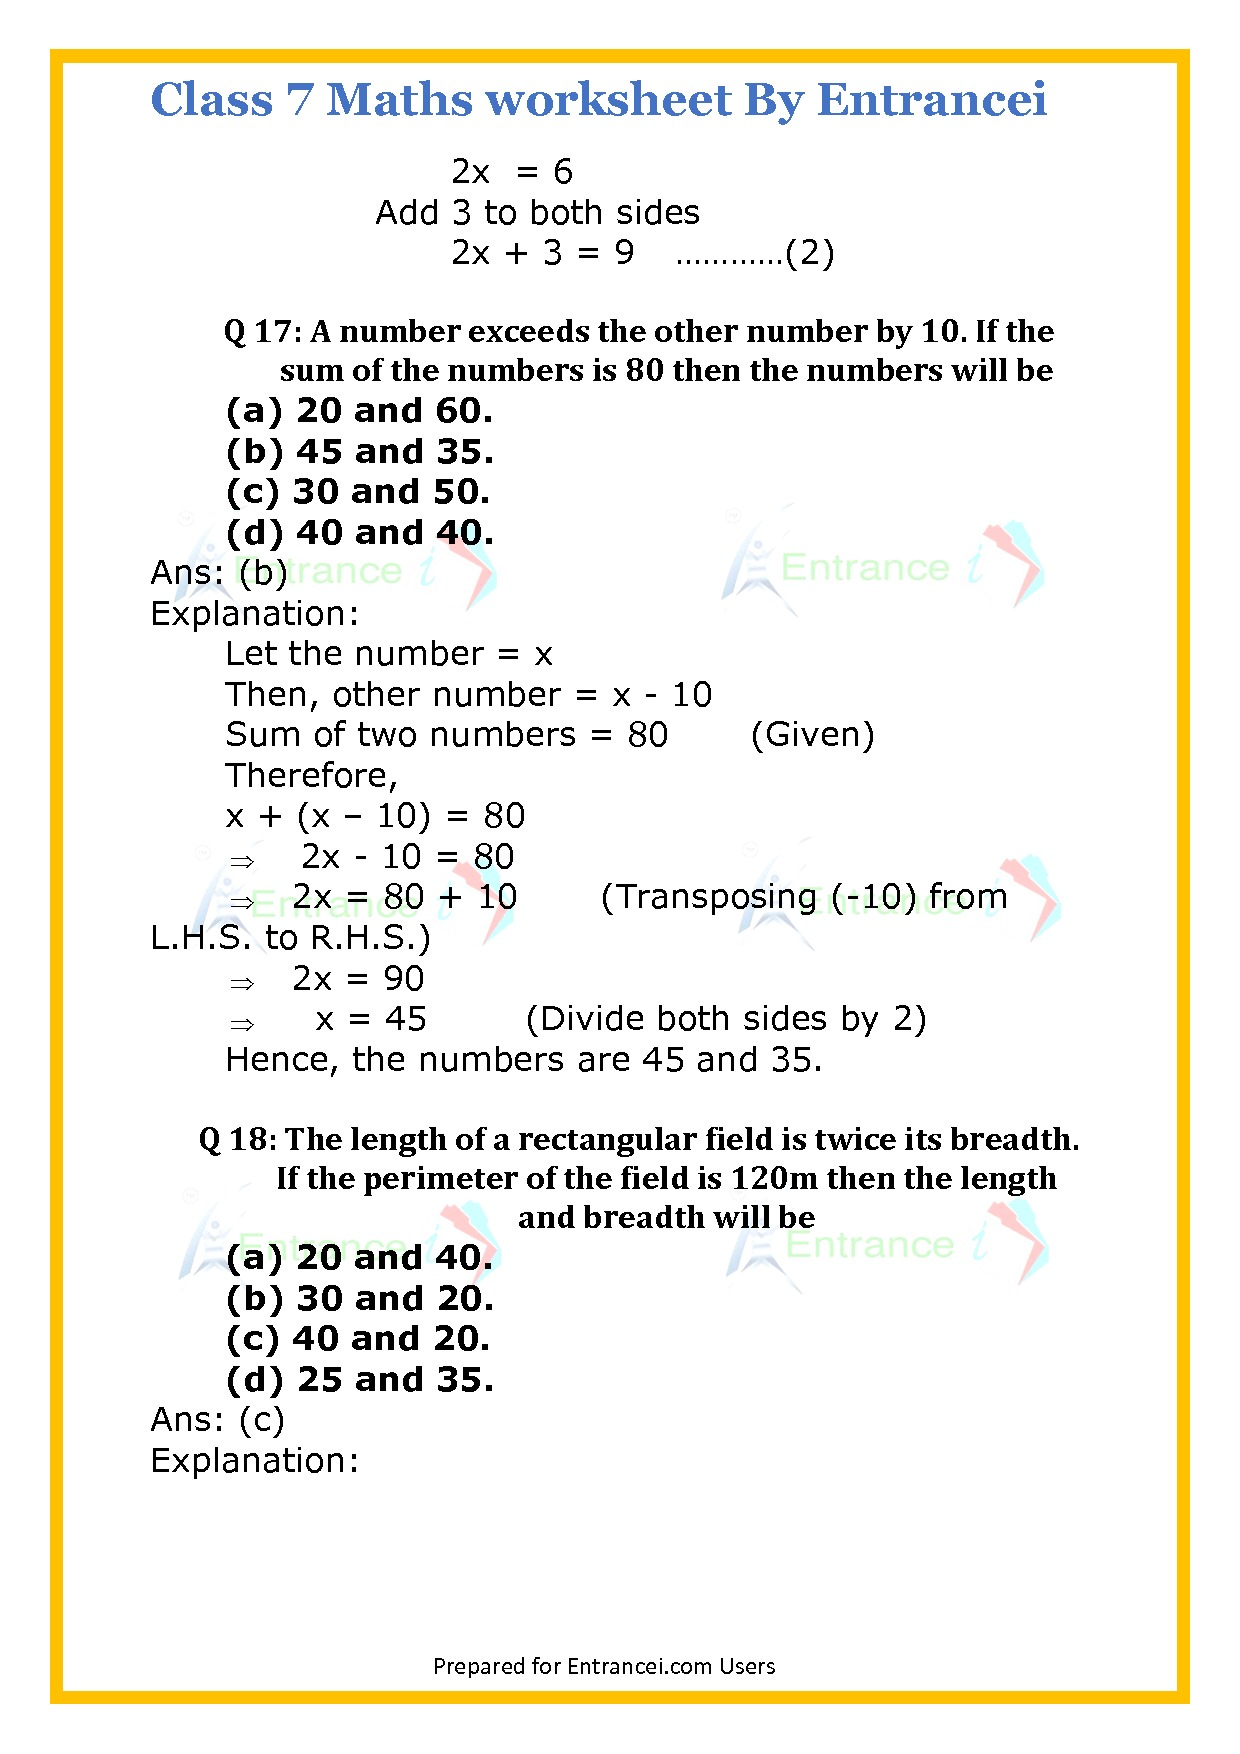 Cbse Class 7 Maths Worksheet For Chapter 4 Simple Equations